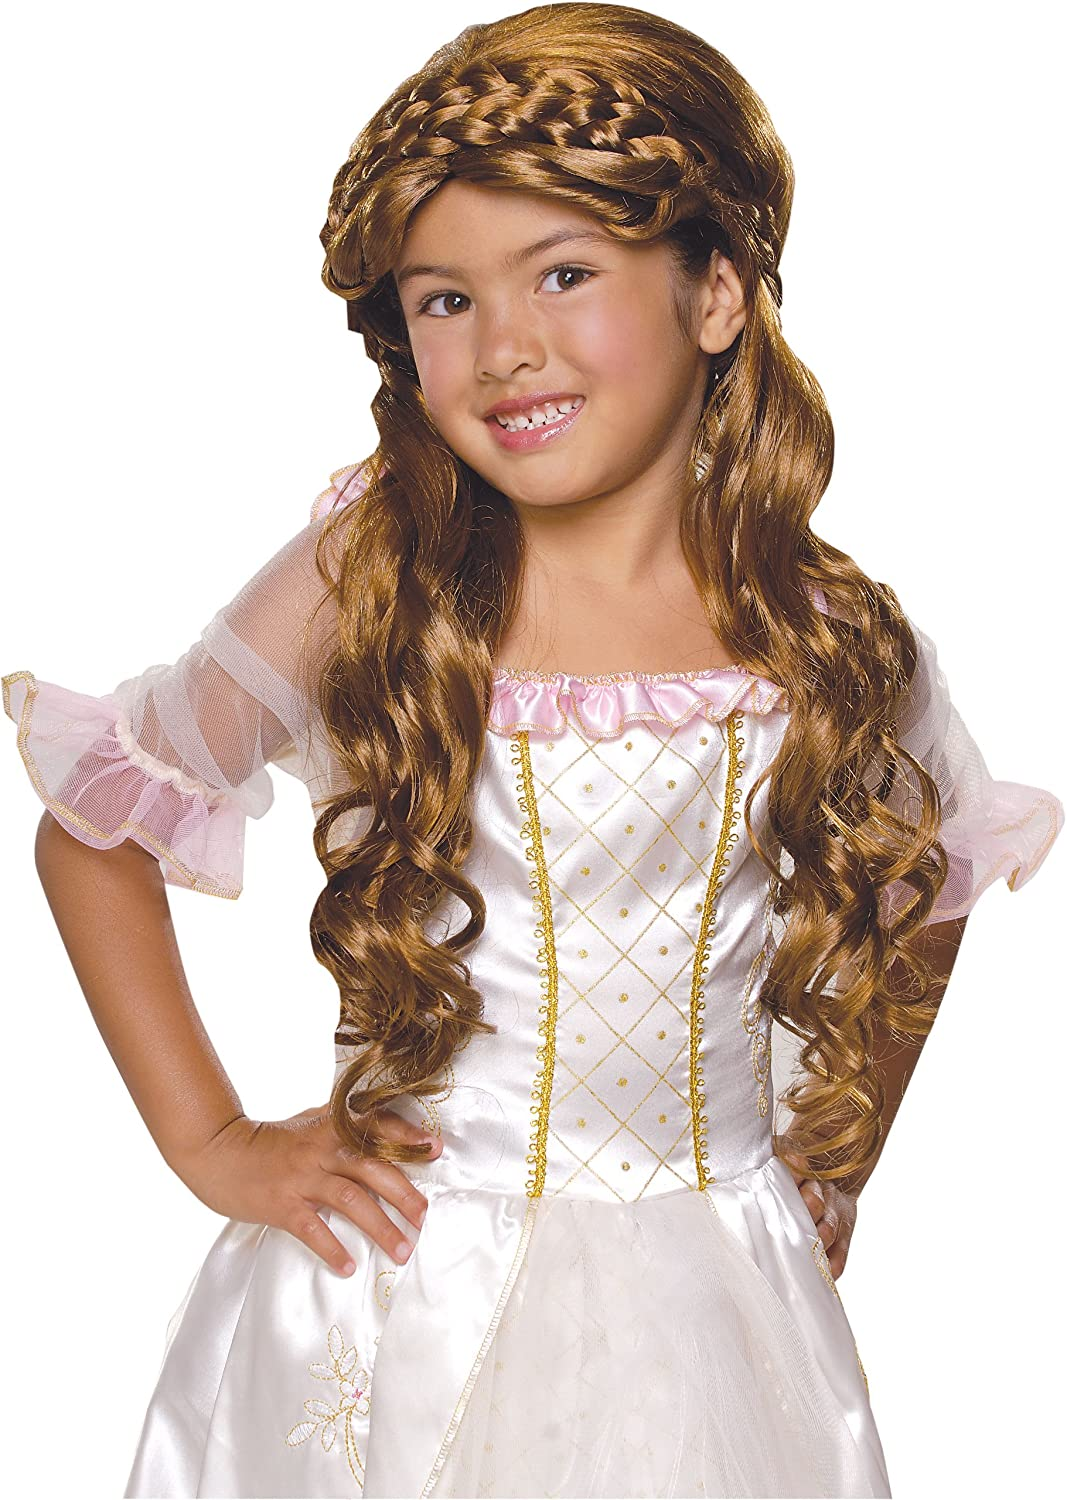 Rubie's Enchanted Princess Child's Costume Wig, Black Rubies - Domestic 51417